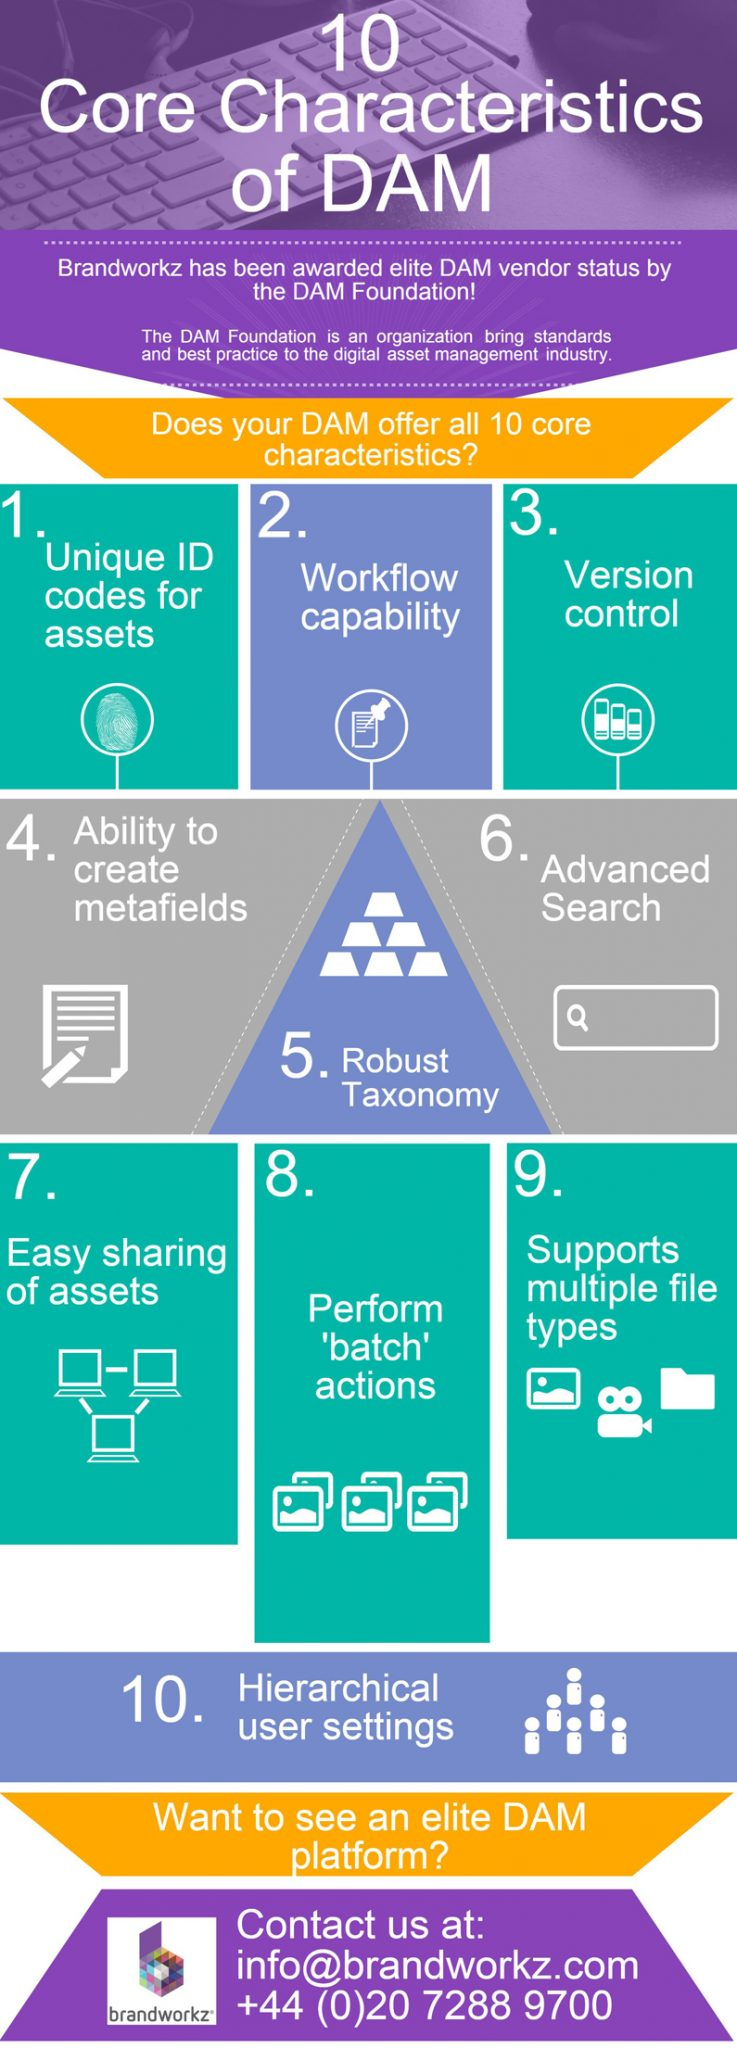 This infographic looks at the 10 core characteristics of a great digital file management system as laid out by the DAM Foundation.